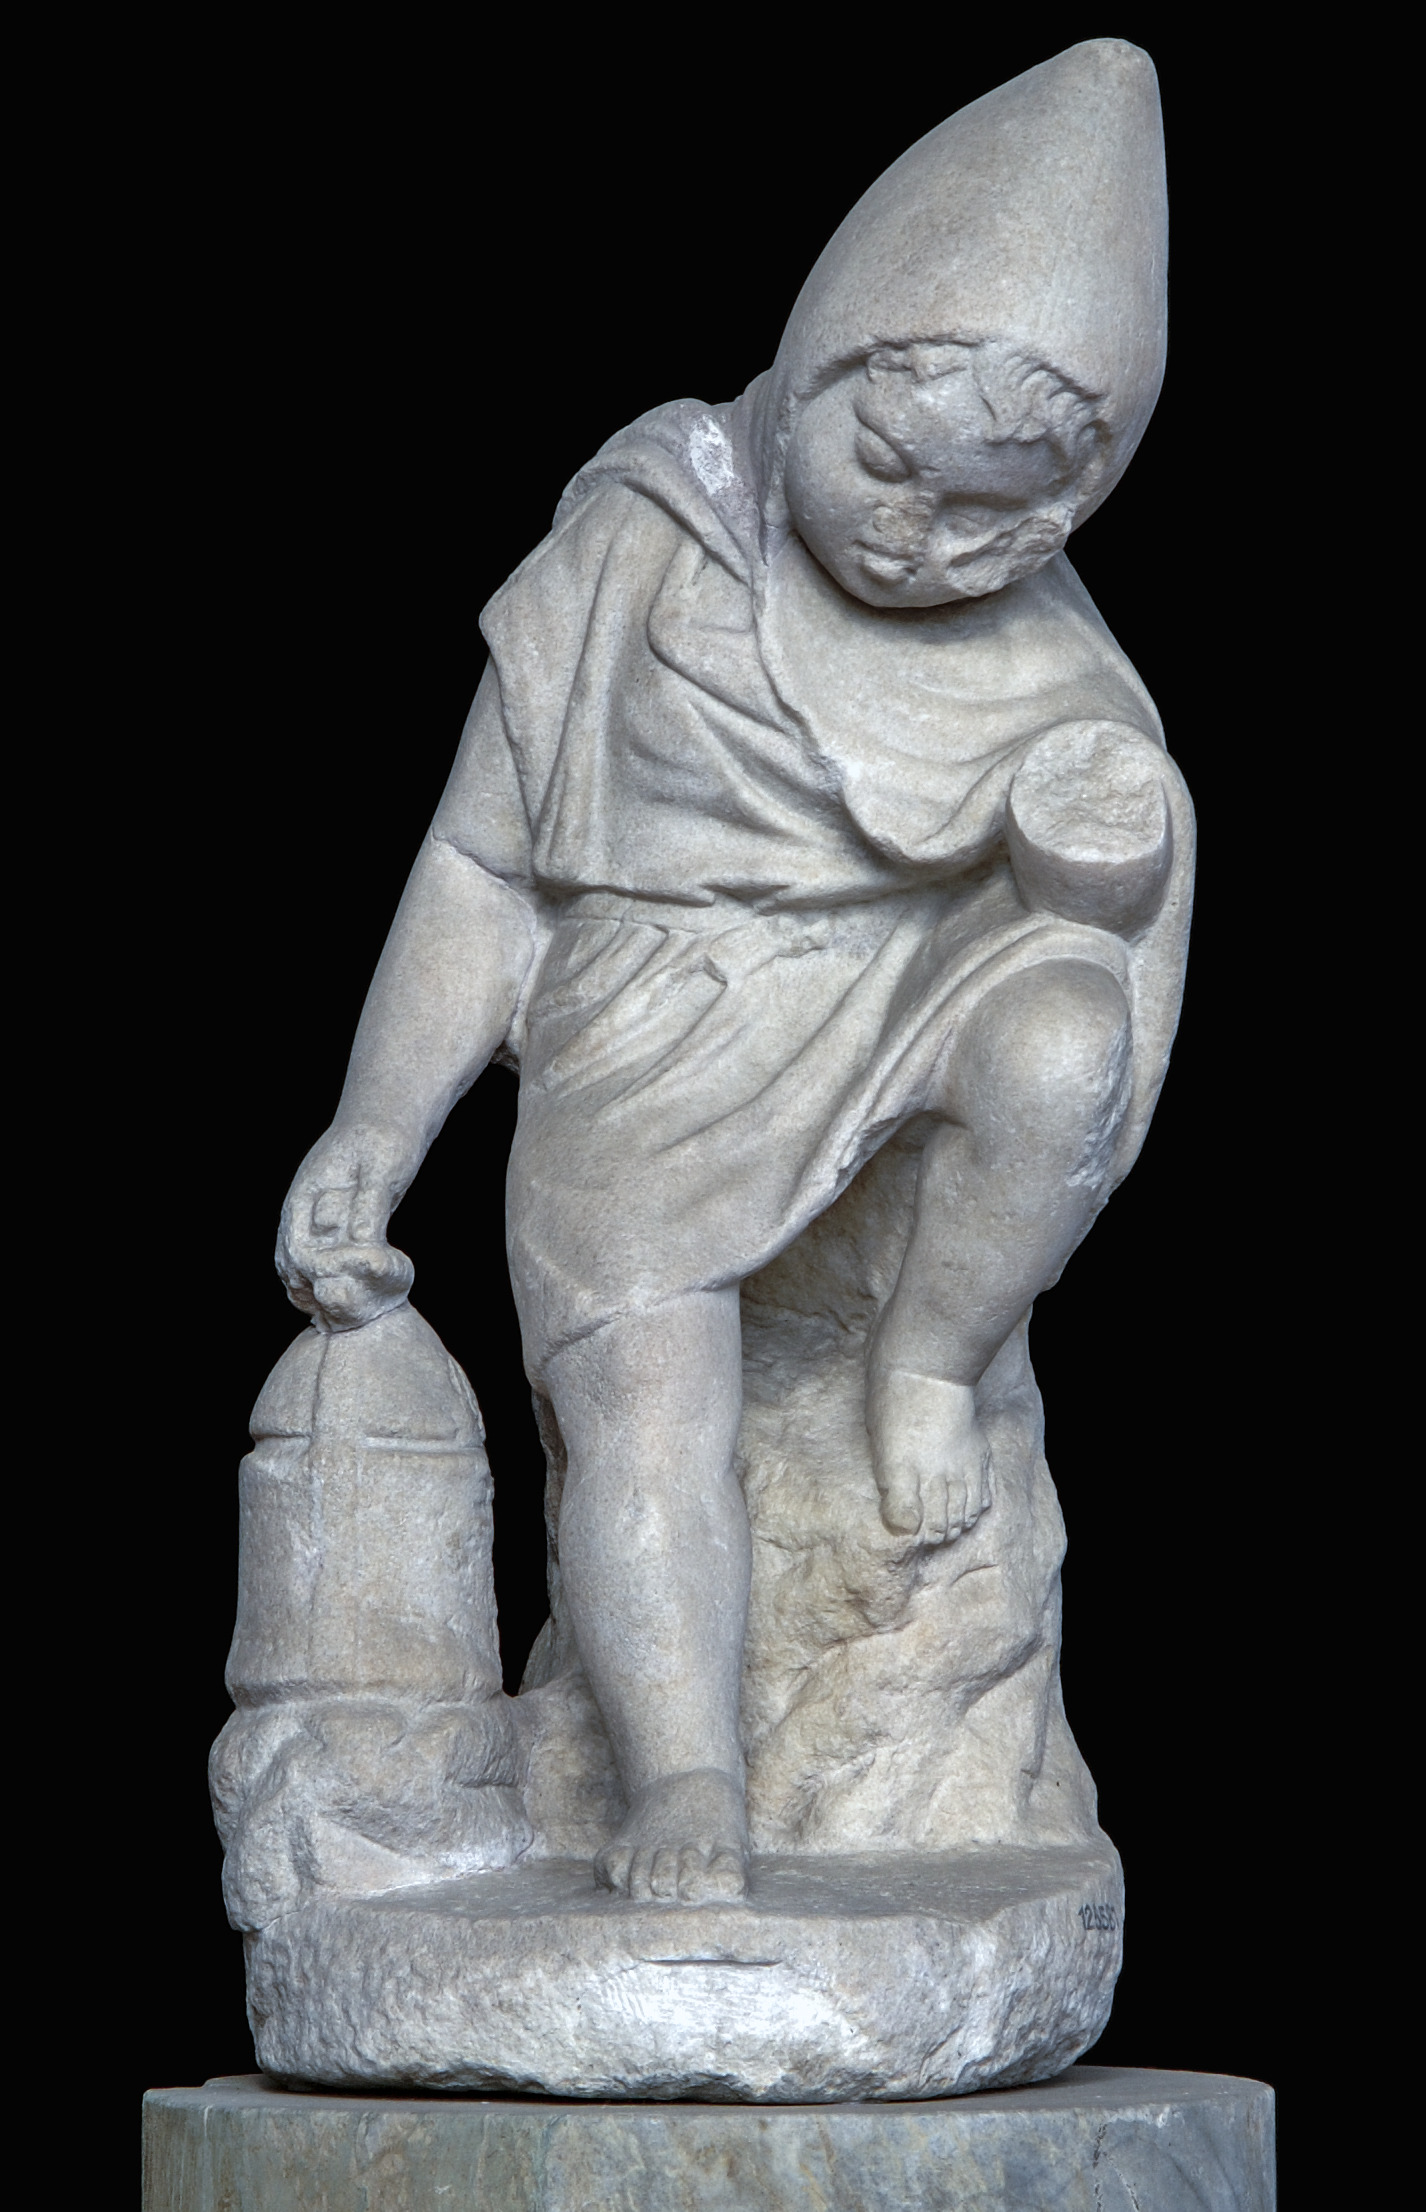 Marble statue of a lanternarius or lantern-bearer, found in Italy, 1st–2nd century AD. With permission of the Ministero della Cultura ̶ Museo Nazionale Romano.